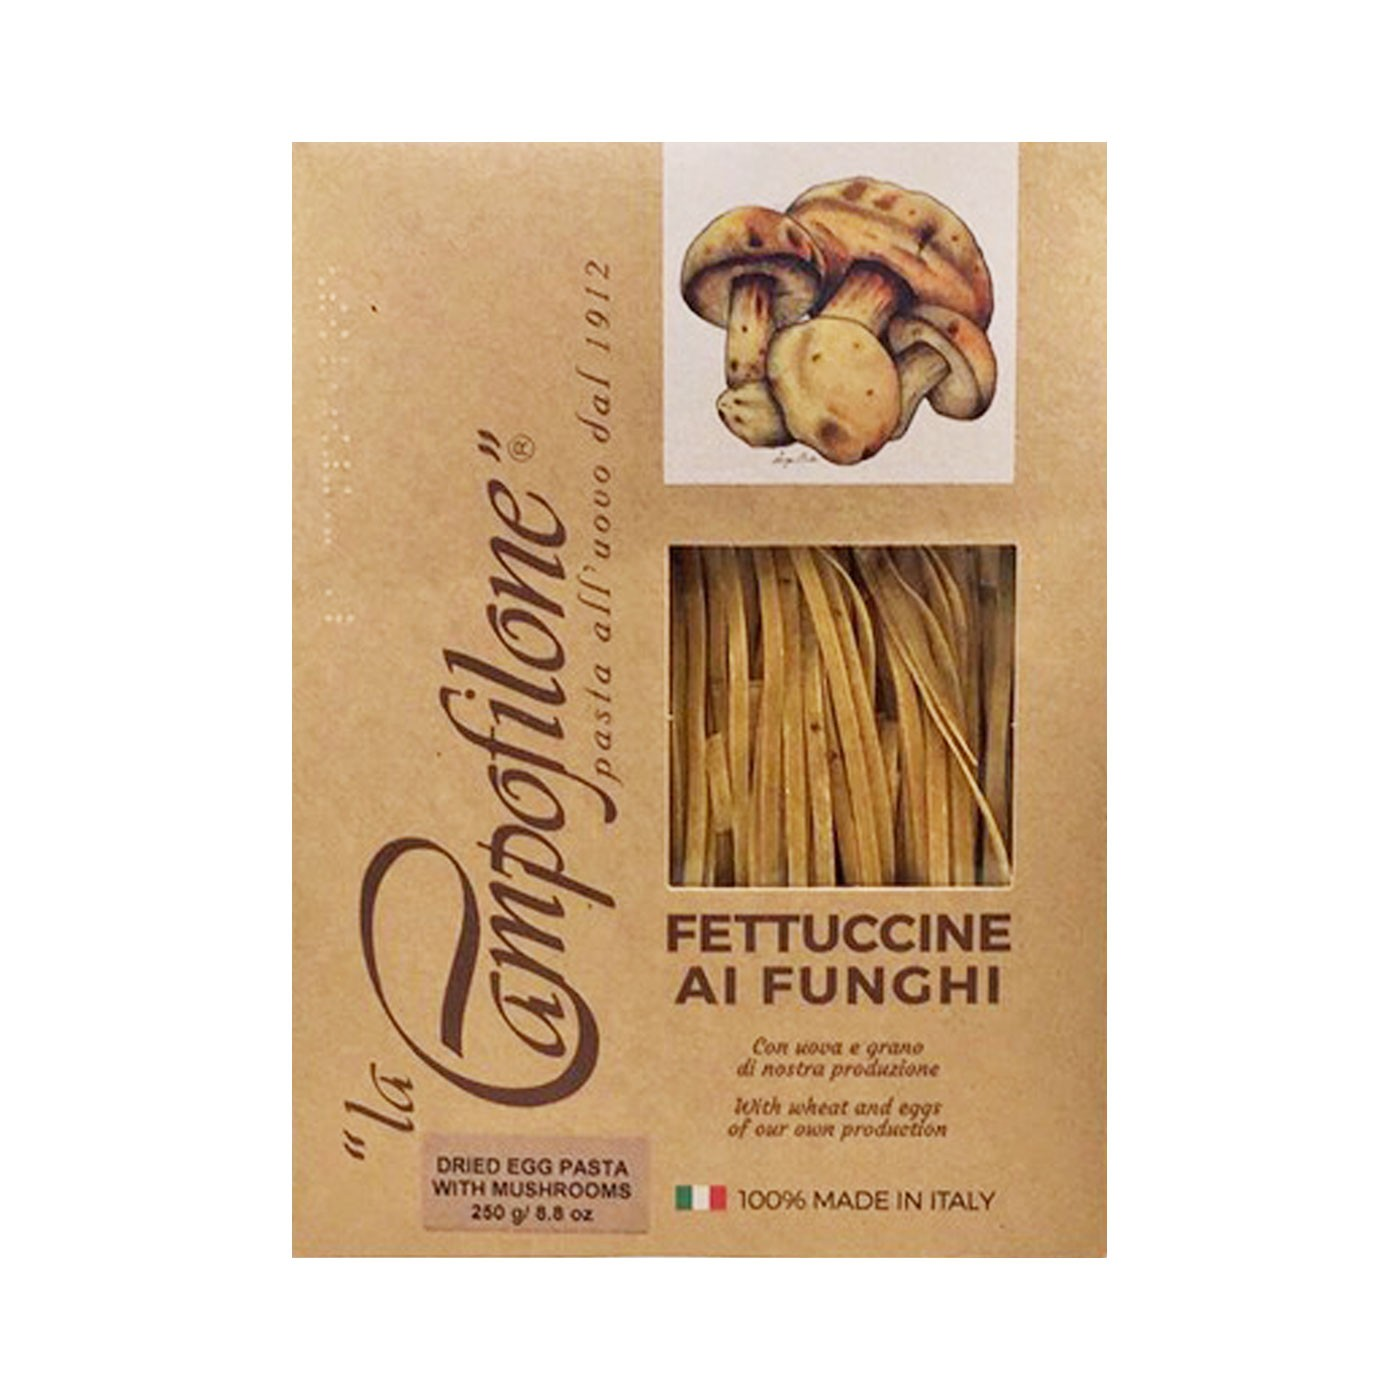 Fettuccine with Mushrooms 8.8oz